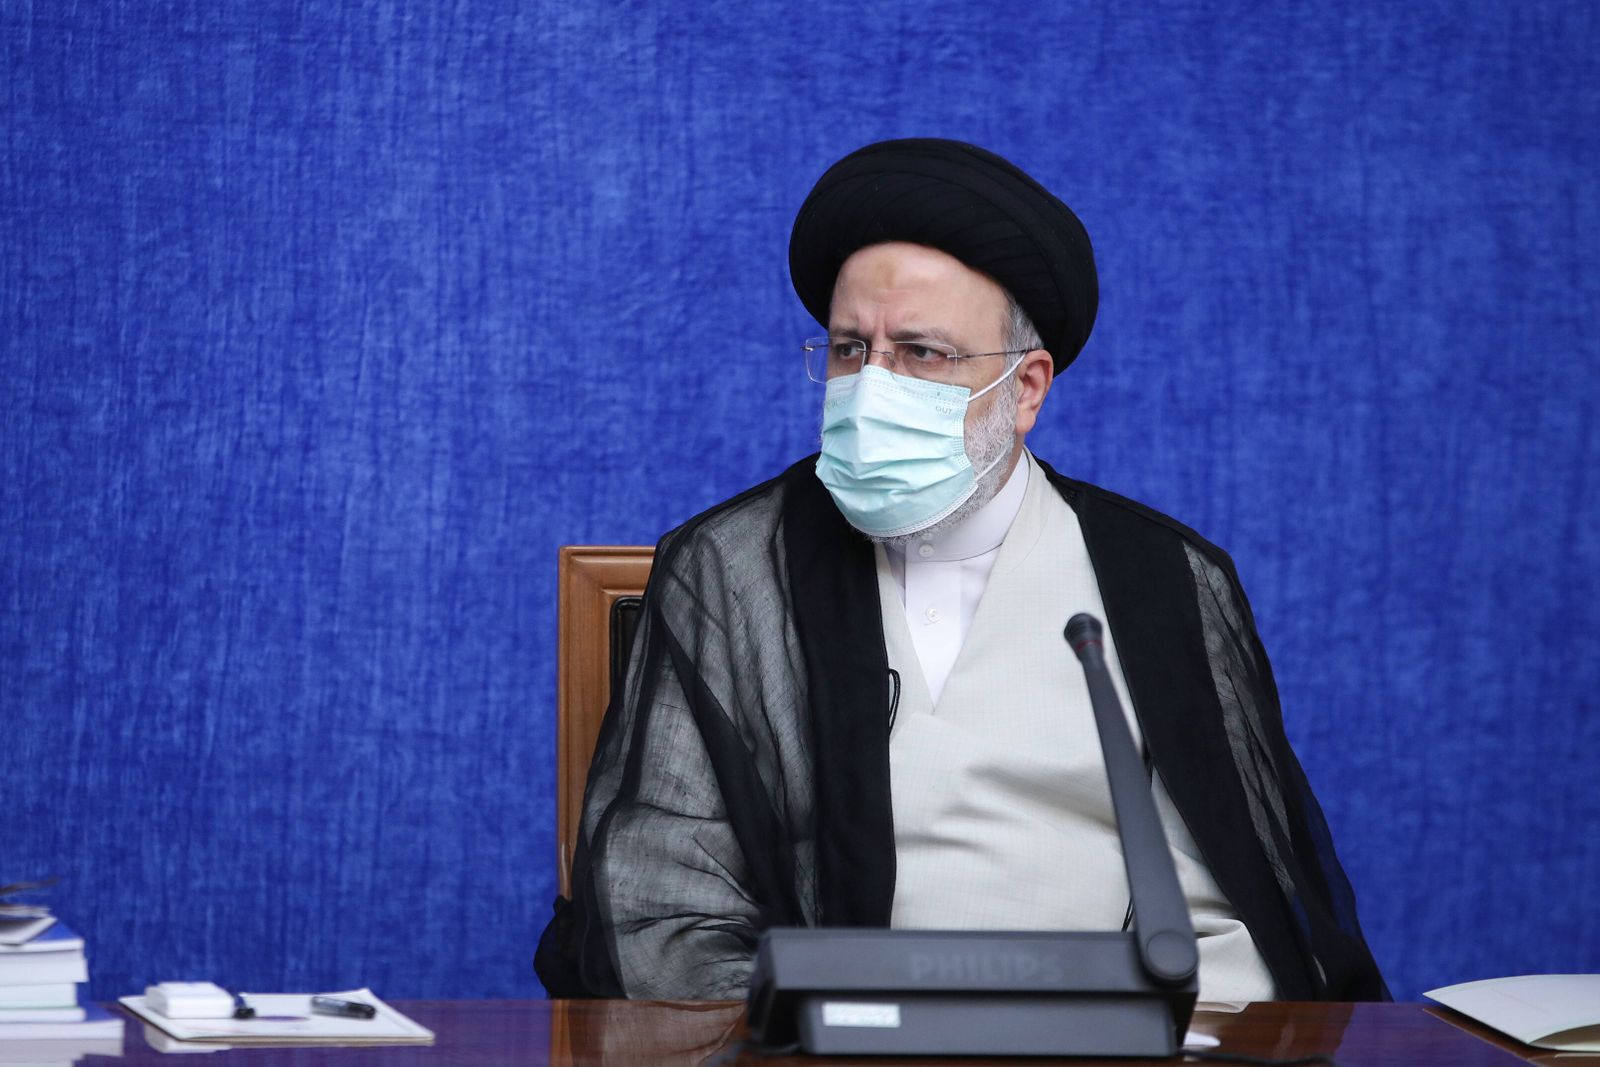 August 4, 2021, Tehran, Tehran, Iran: A handout picture provided by the Iranian presidency on August 4, 2021, shows Iran